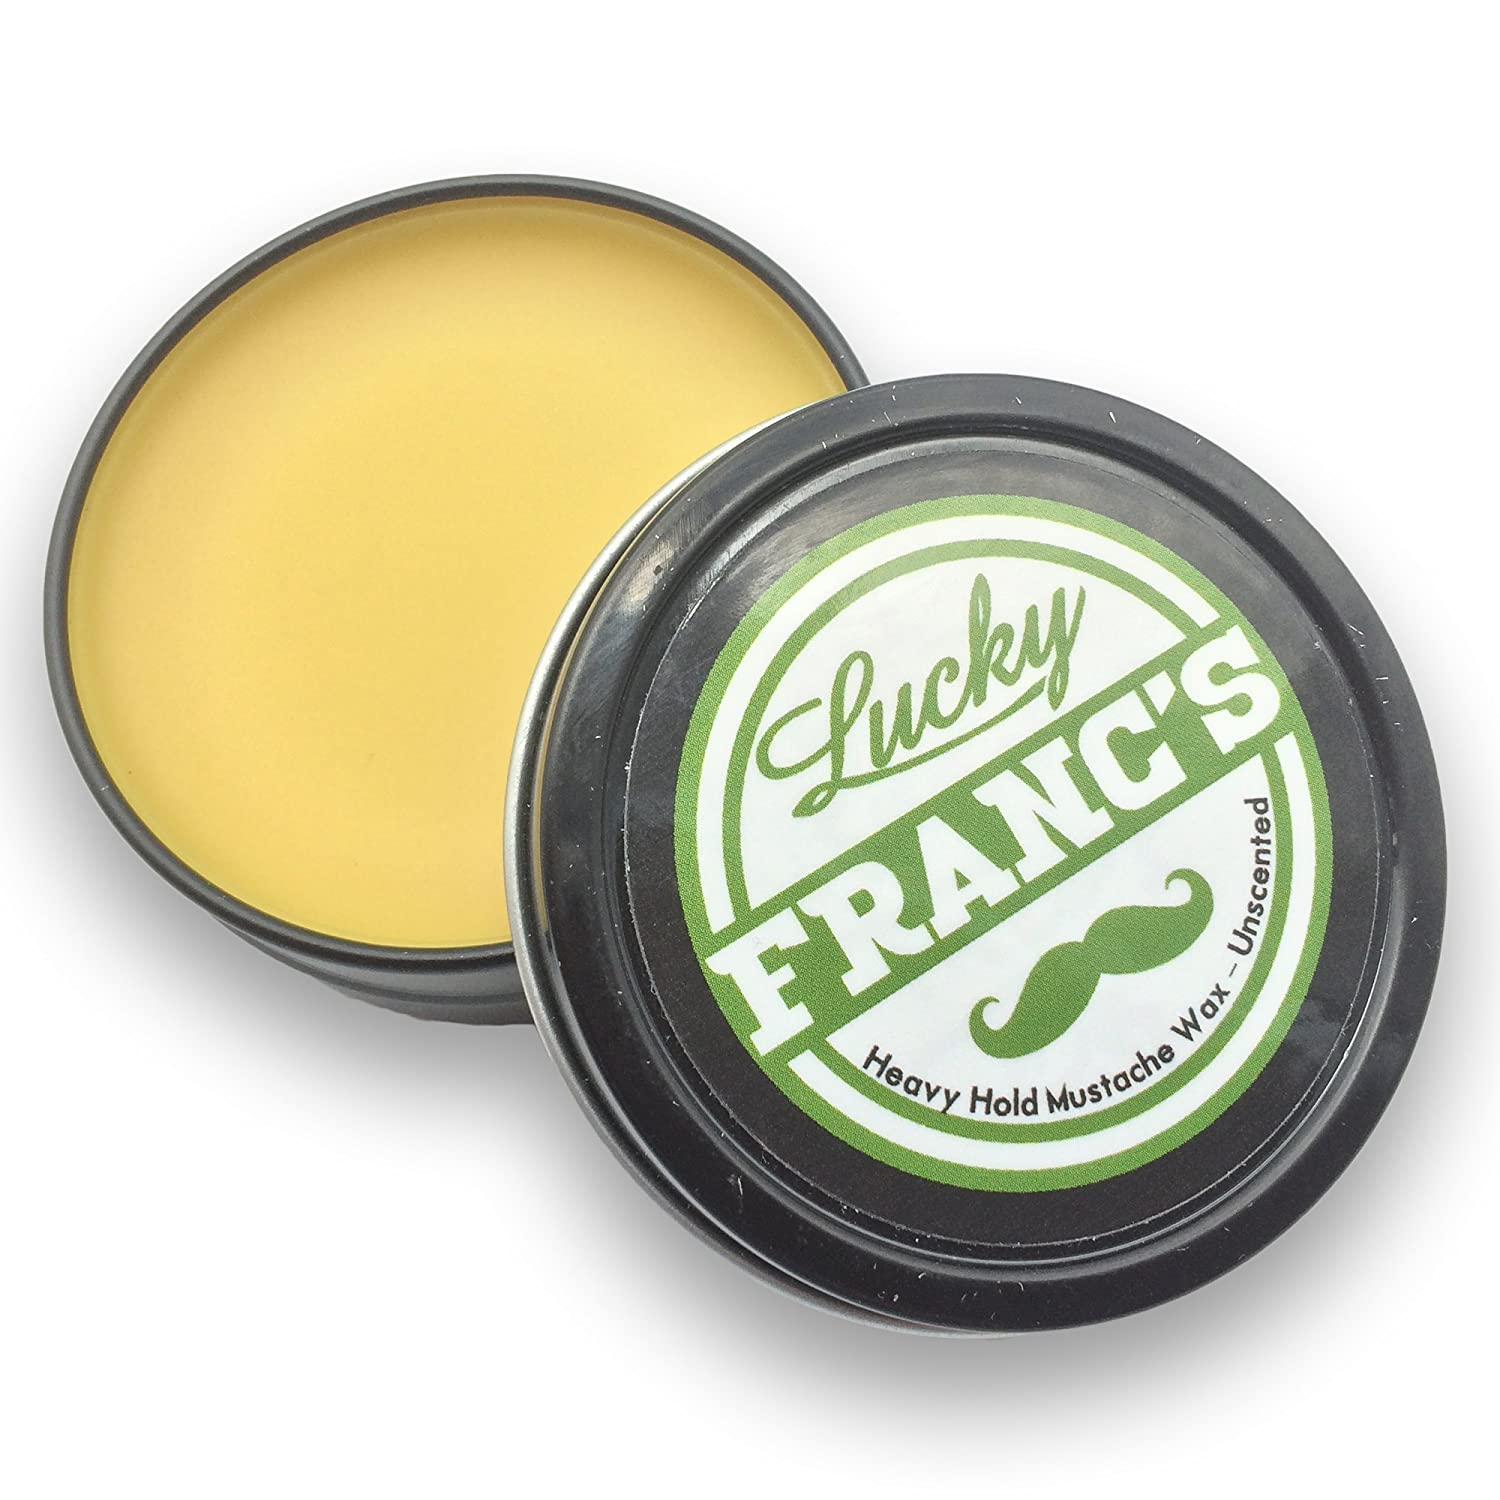 Mustache Wax. LARGE 2oz. Size Strong Hold Unscented. Handlebars, Fu Manchu, curly, or any style! Natural & Handmade in US. Works as beard wax too! *Lucky Franc's Brand* Red Cat Brands